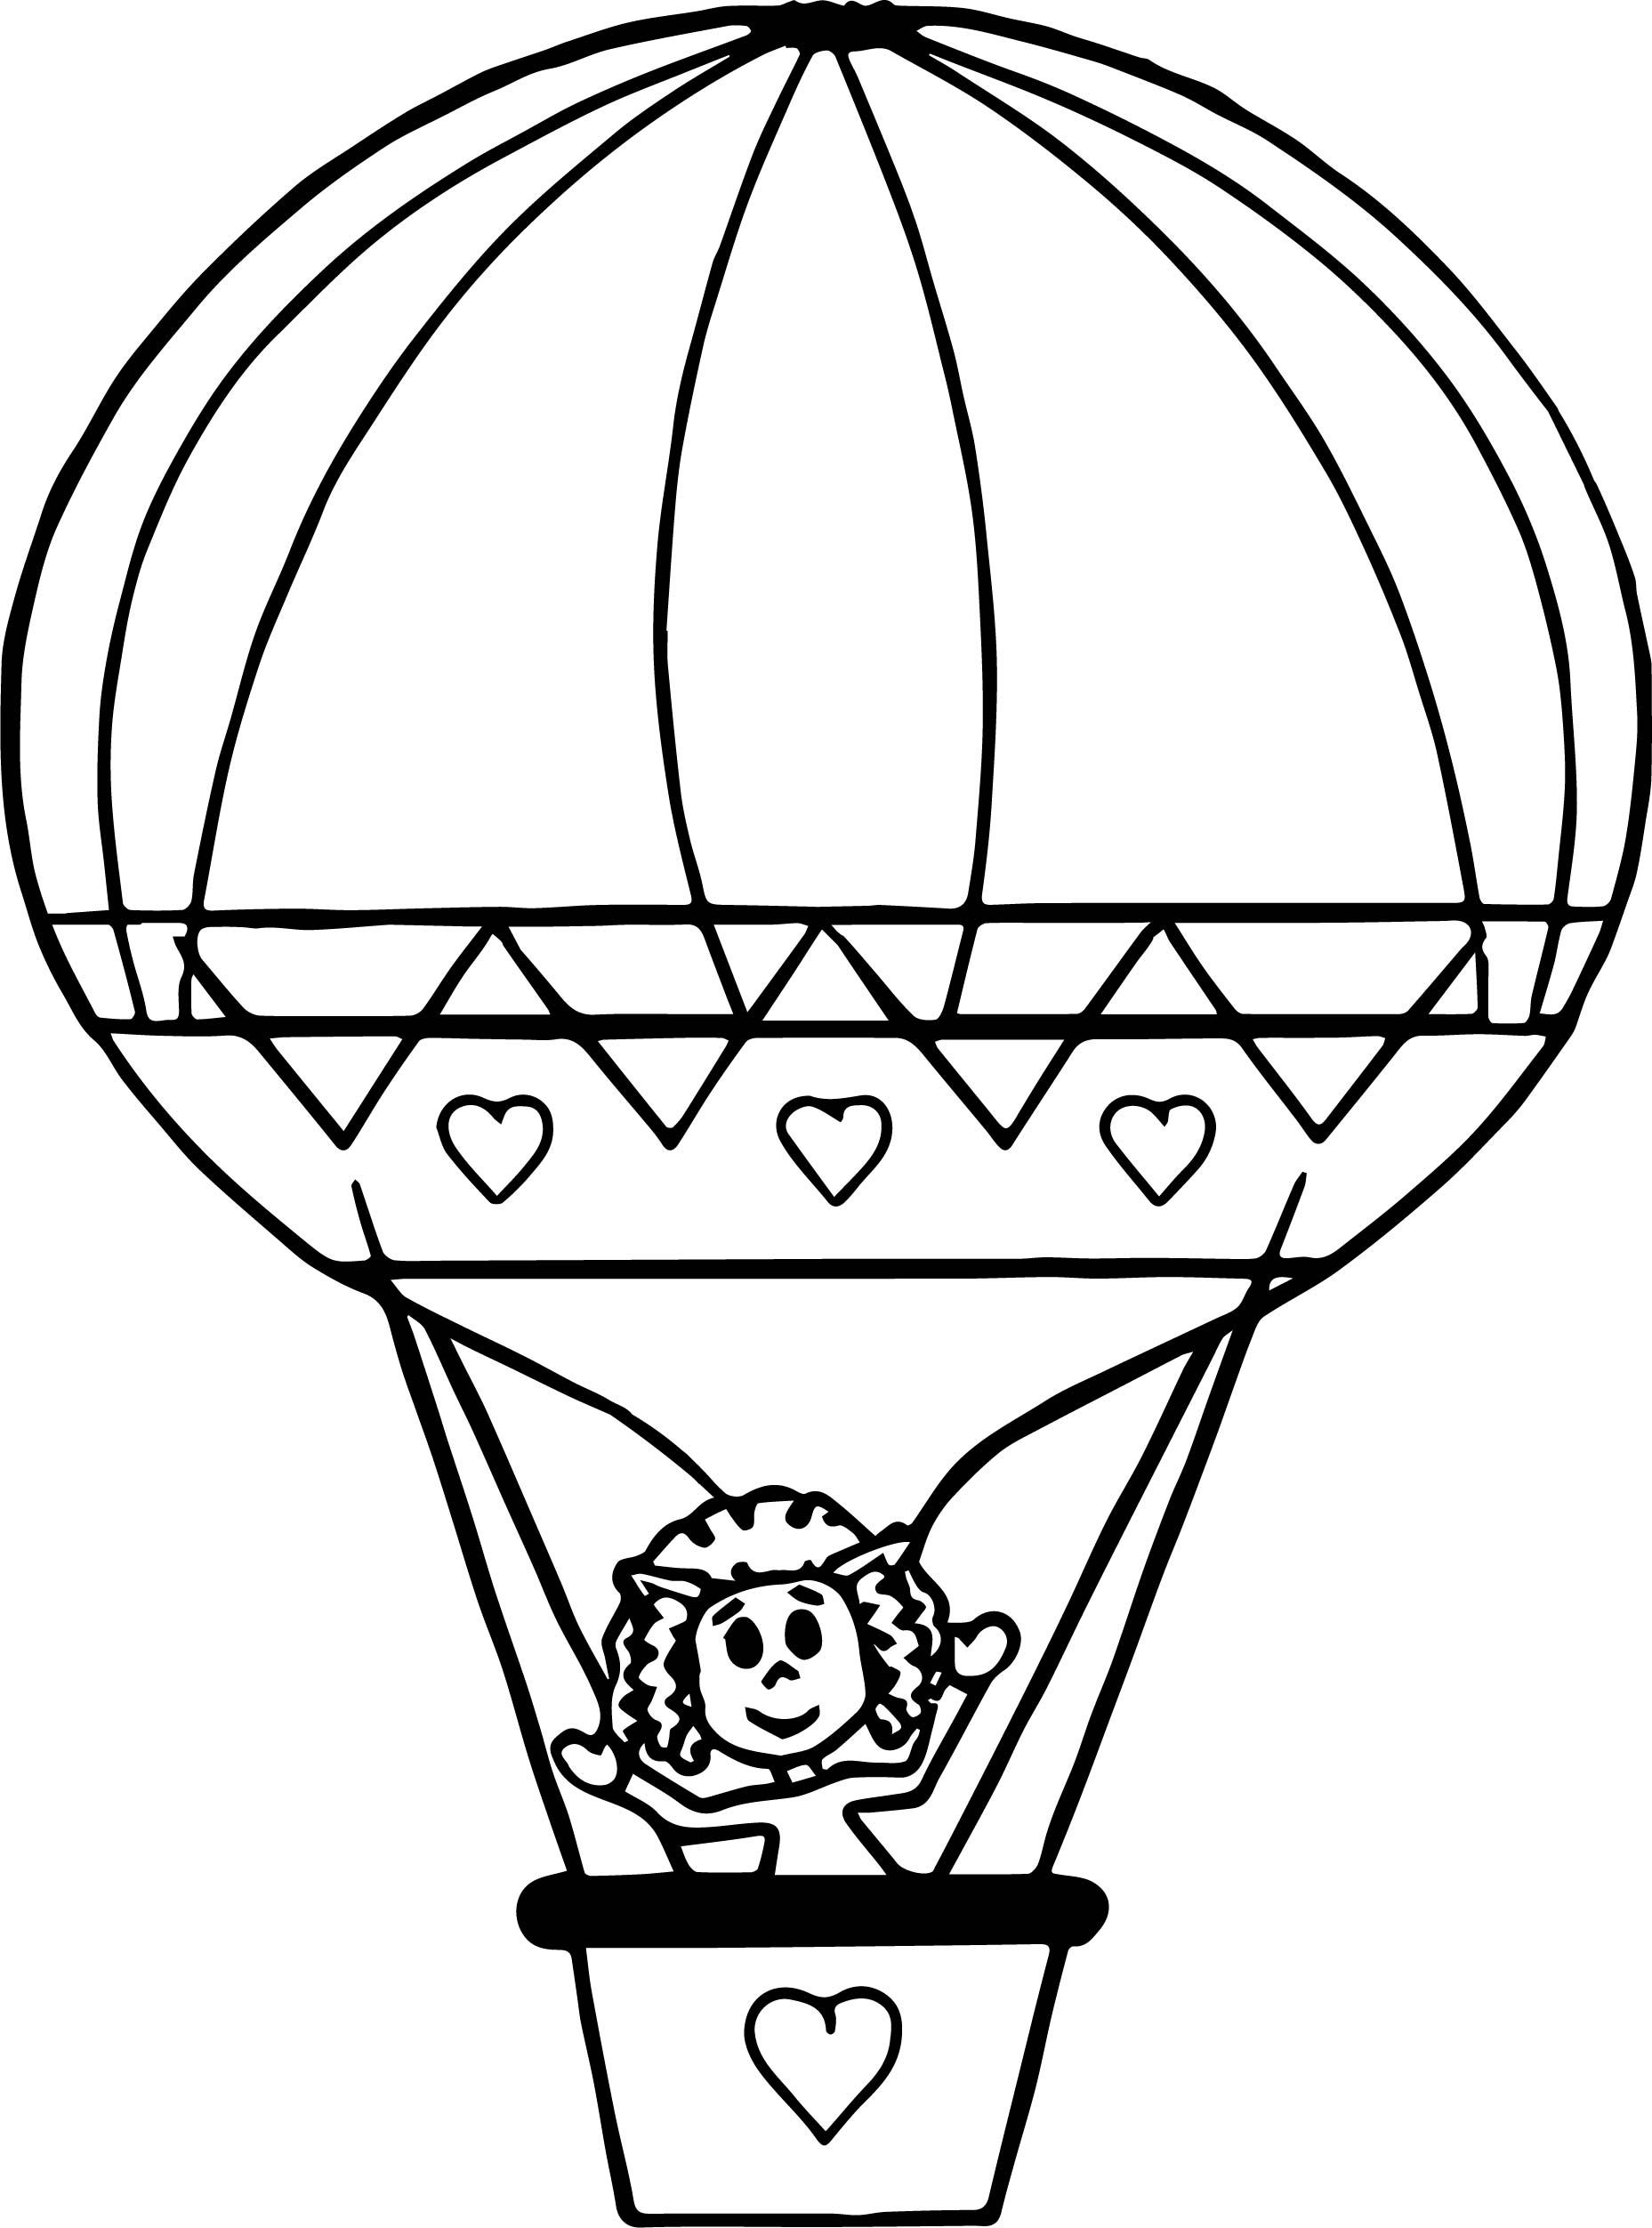 This is a photo of Hot Air Balloon Coloring Pages Free Printable throughout bottom